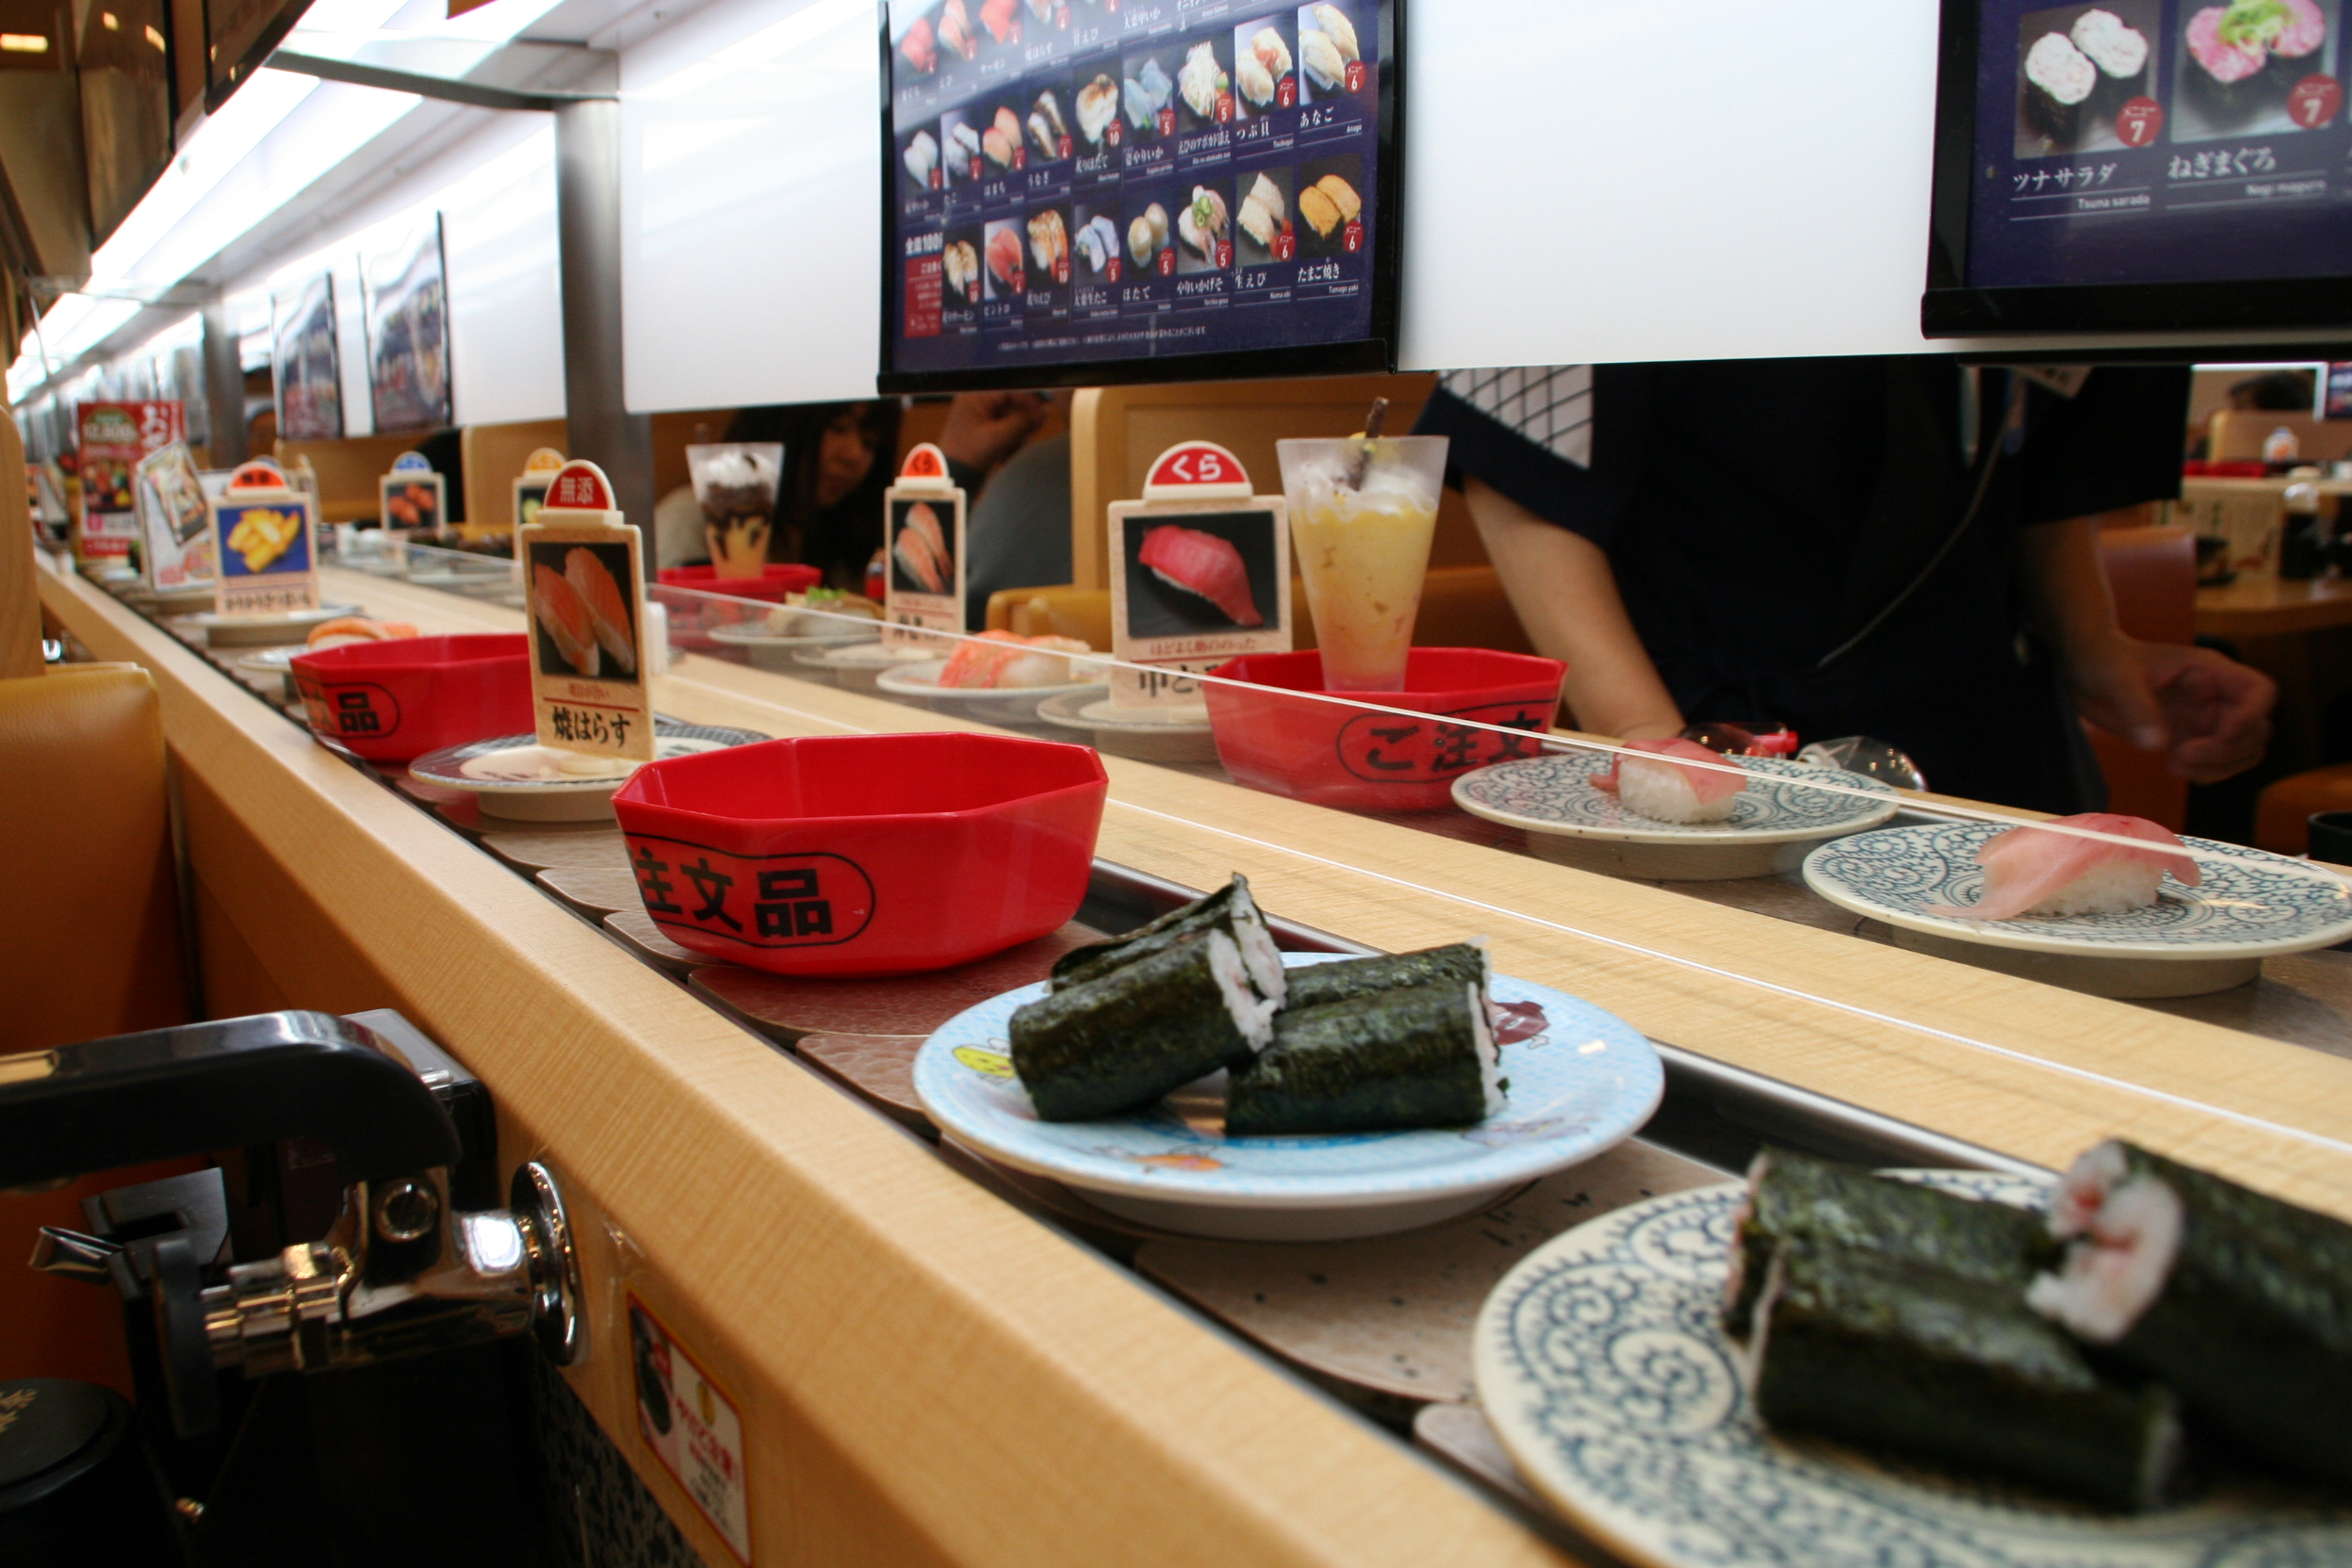 10 Best Conveyor Belt Sushi In Tokyo To Enjoy Cheap Tasty